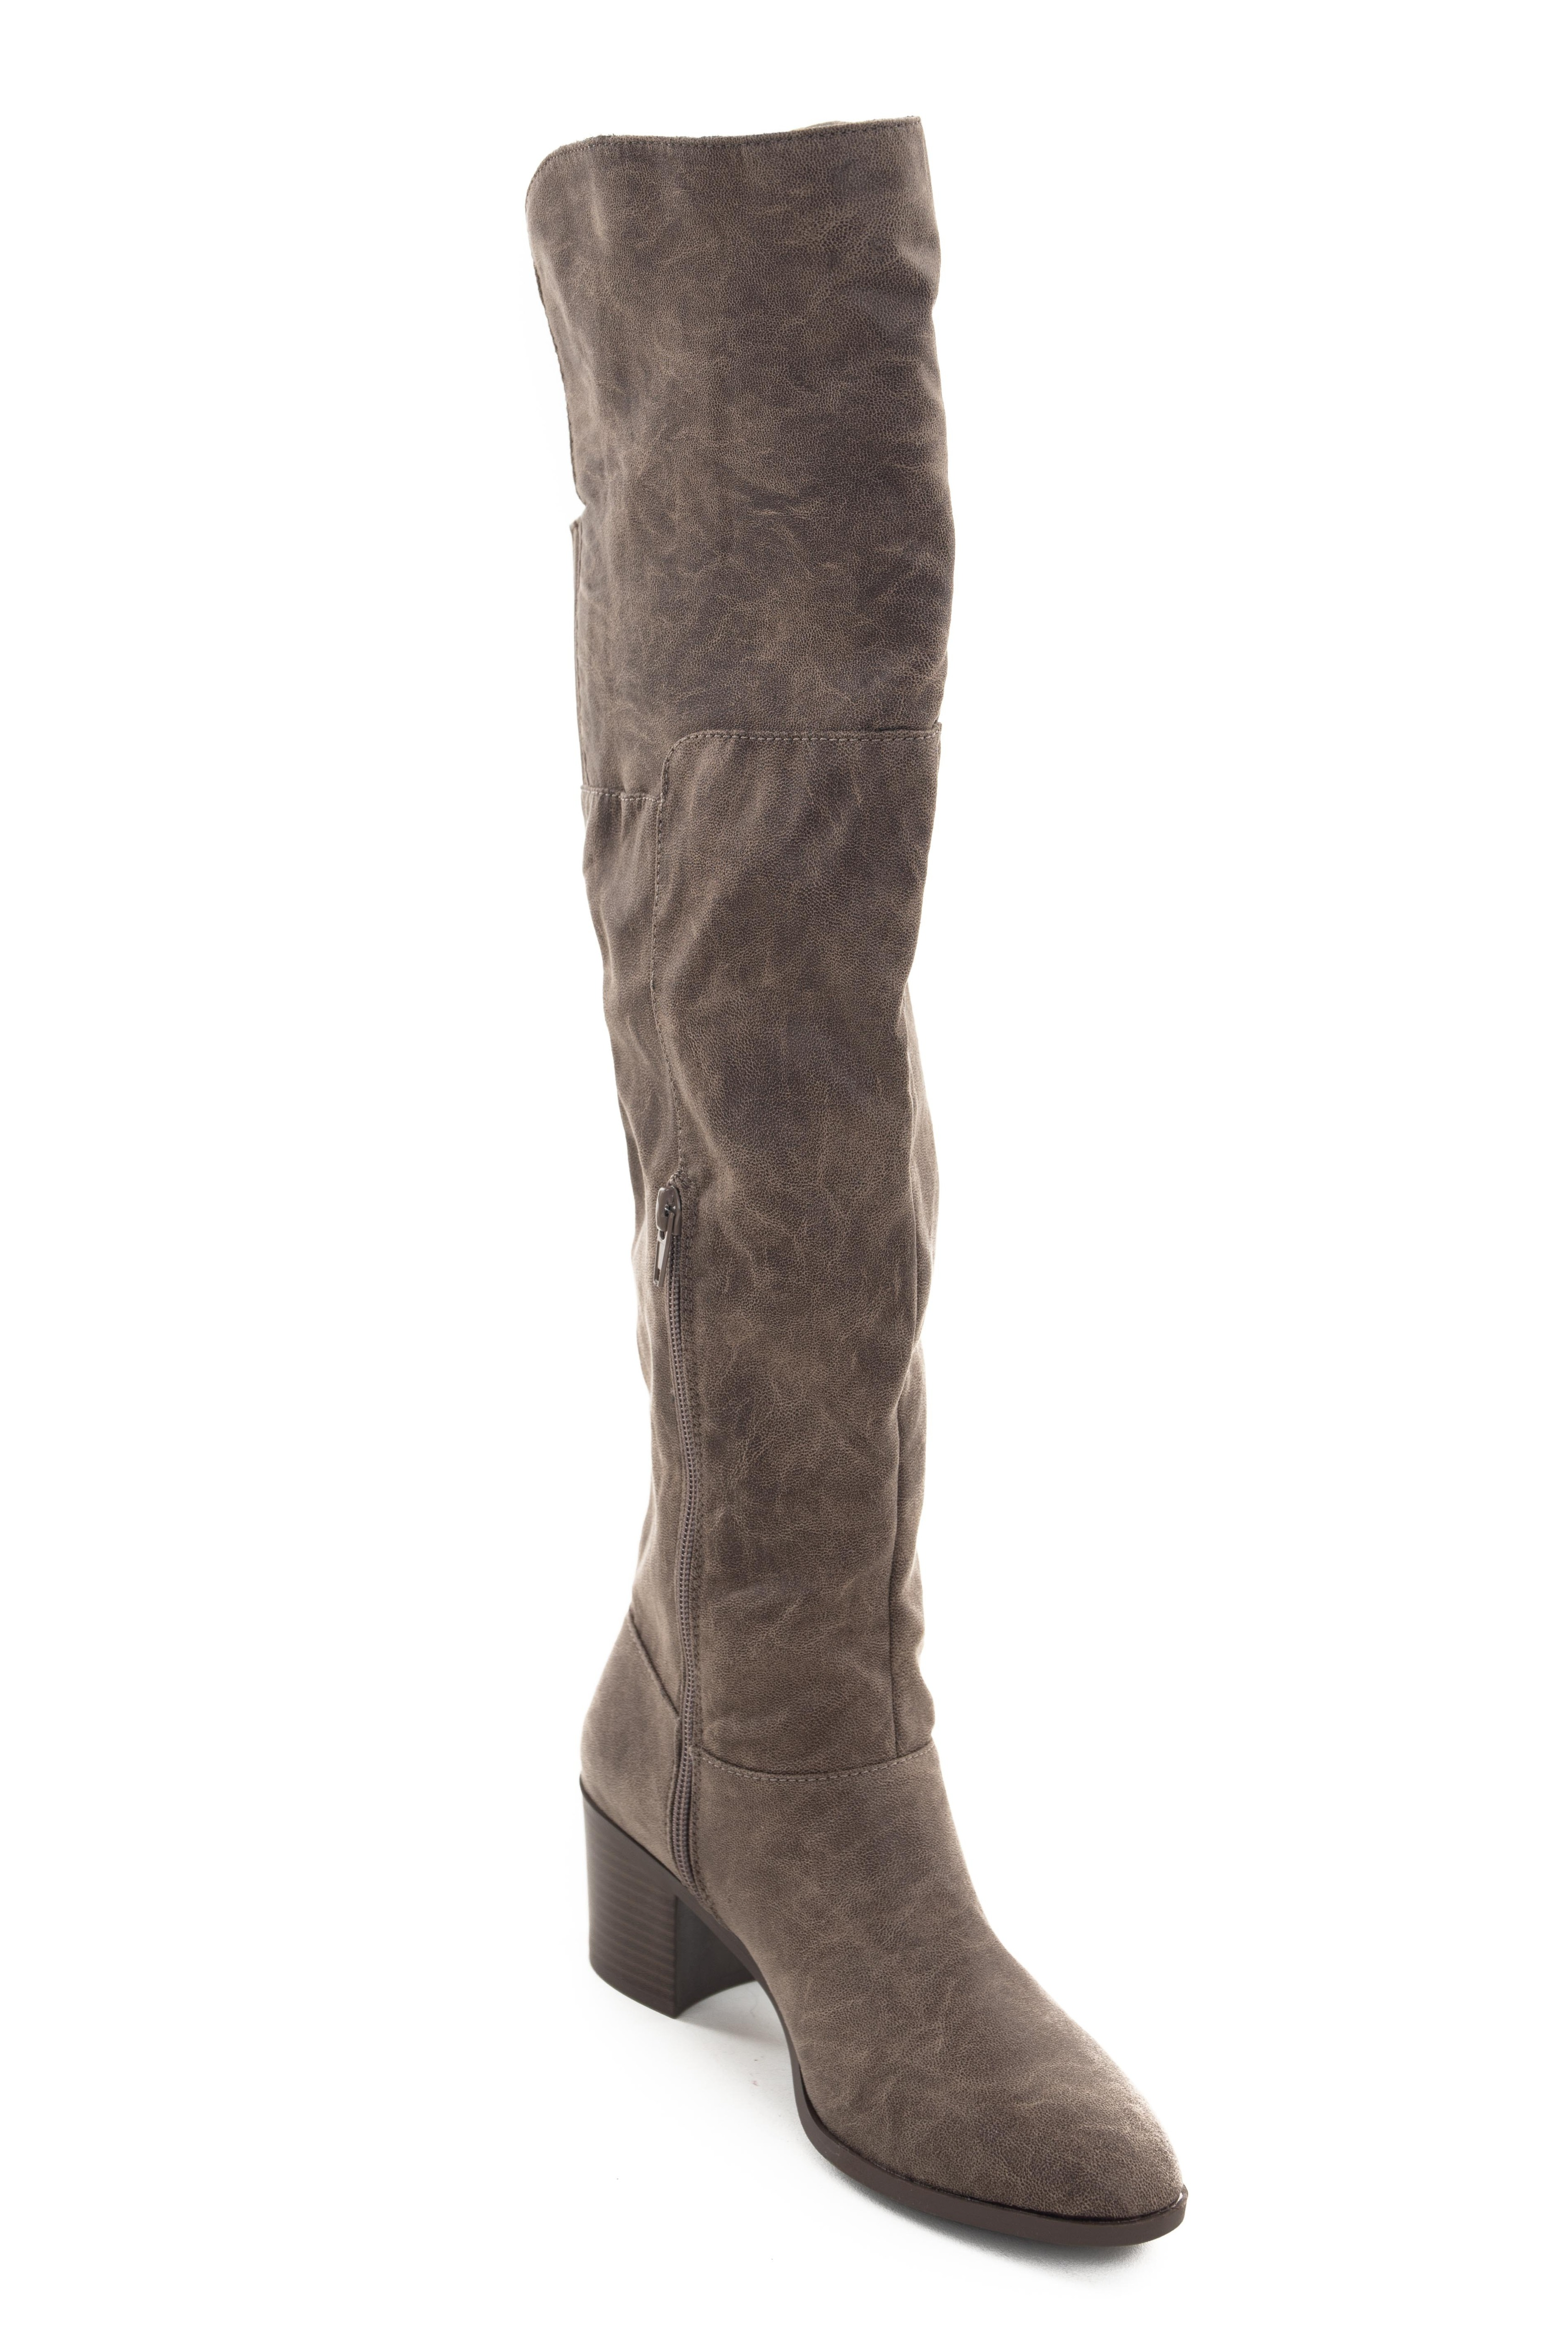 Taupe Textured Faux Leather Stacked Heel Boots